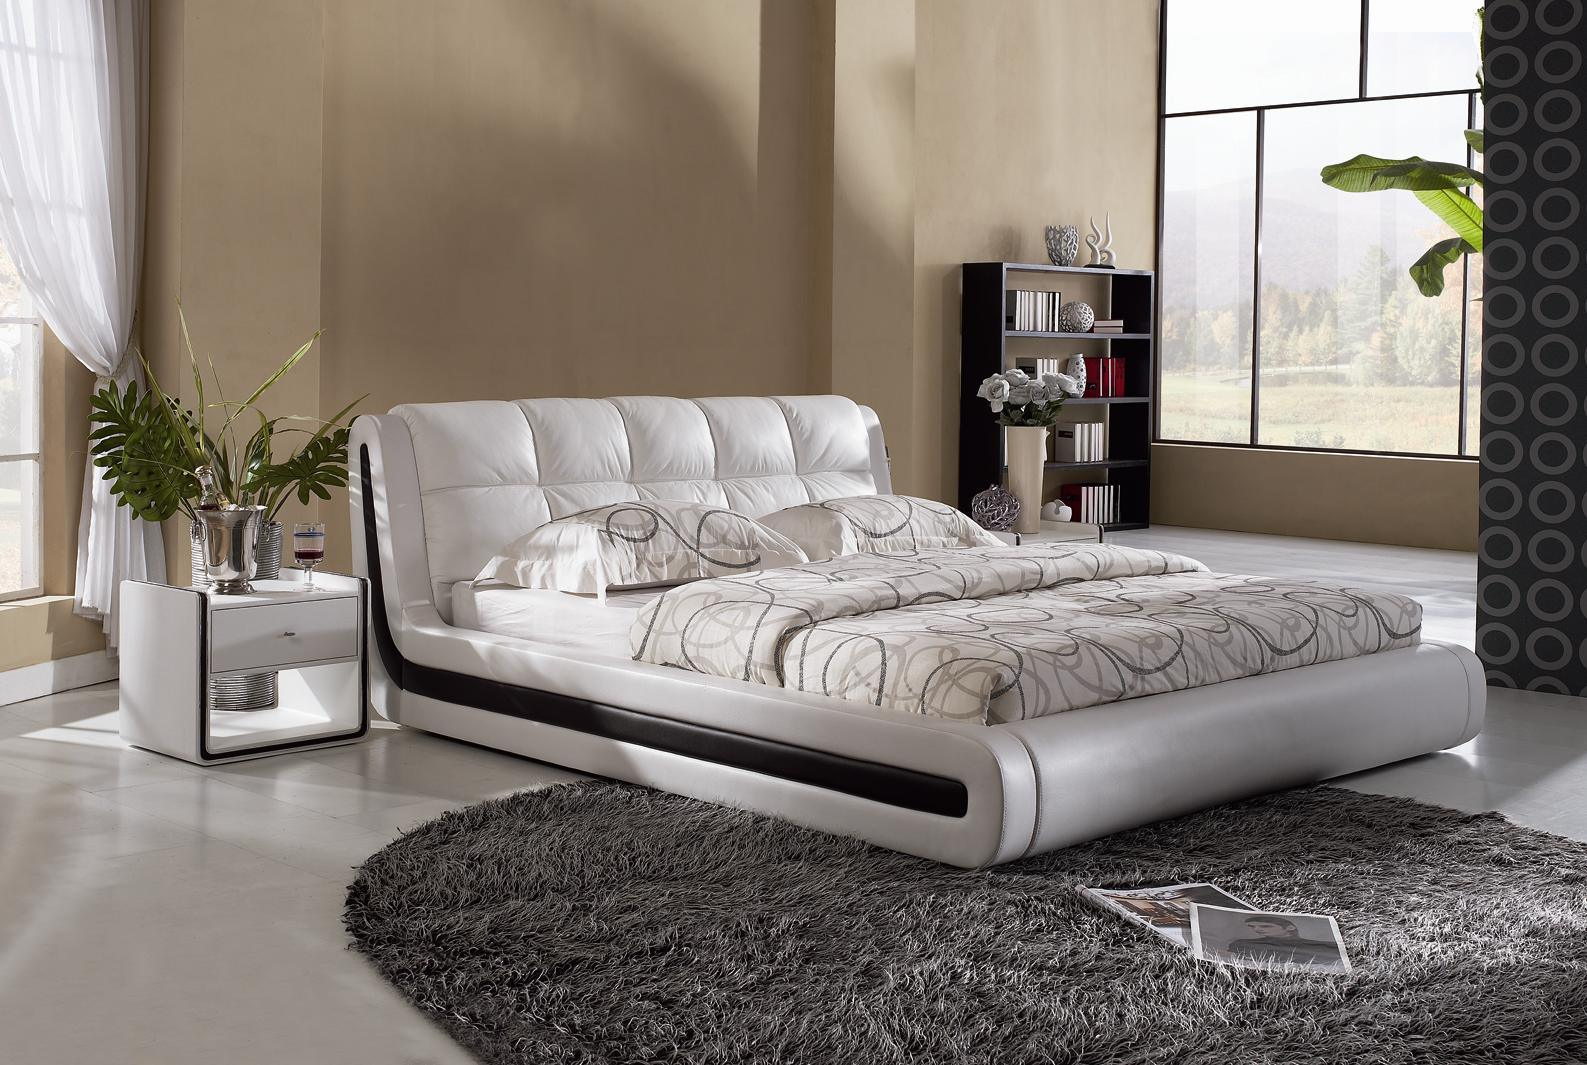 China modern bed design l 8132 china bed design bed for Best bed designs images